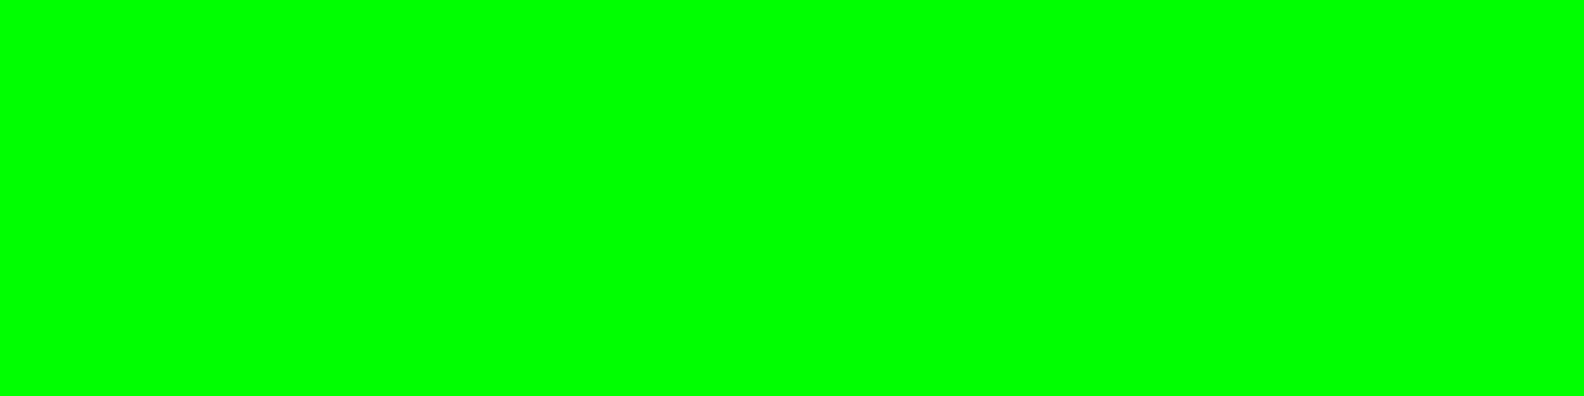 1584x396 Green X11 Gui Green Solid Color Background